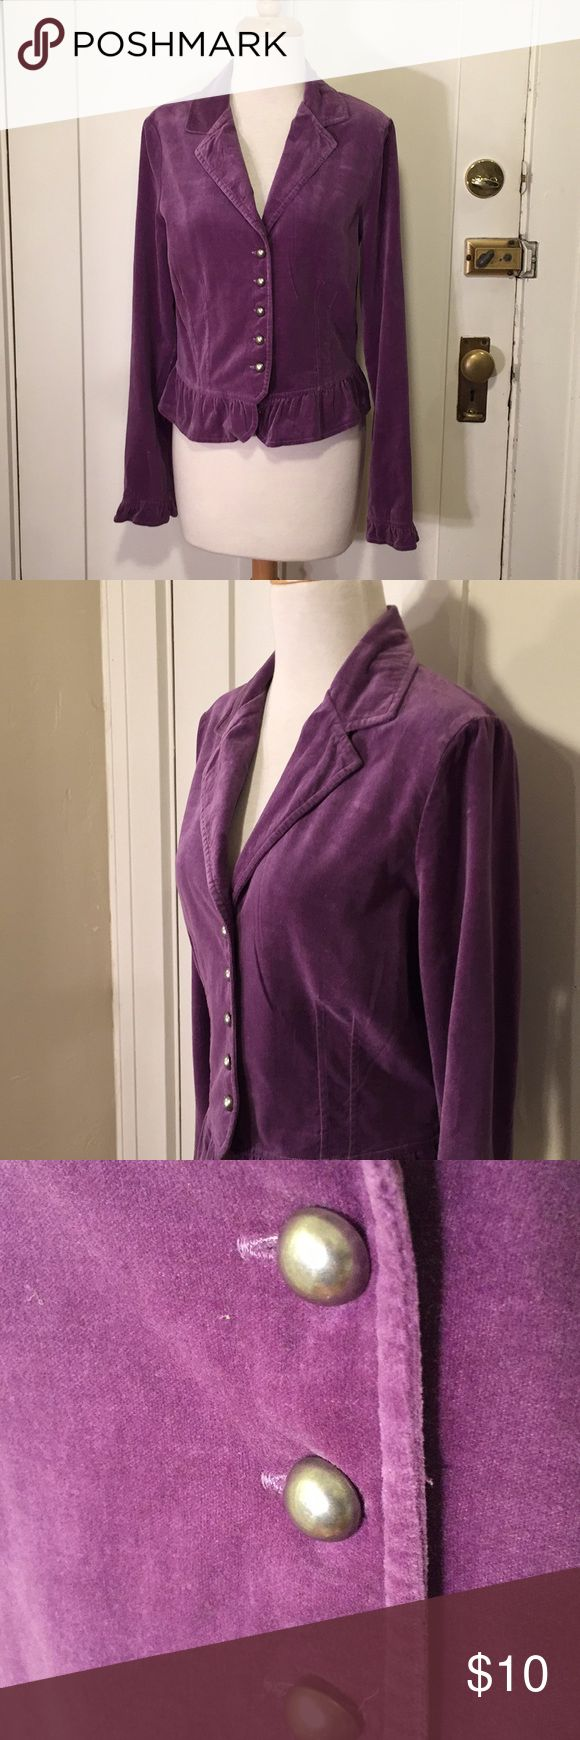 IZ Byer California velvet purple blazer This is a beautiful purple blazer from IZ, purple color with beautiful metal button-down front and button details at cuffs. Good condition, two tiny spots on the bottom ruffle. See pictures for details. Fits more like a medium large. Be sure and check out other items in closet and bundle to receive discounts.This is a Iz Byer Jackets & Coats Blazers